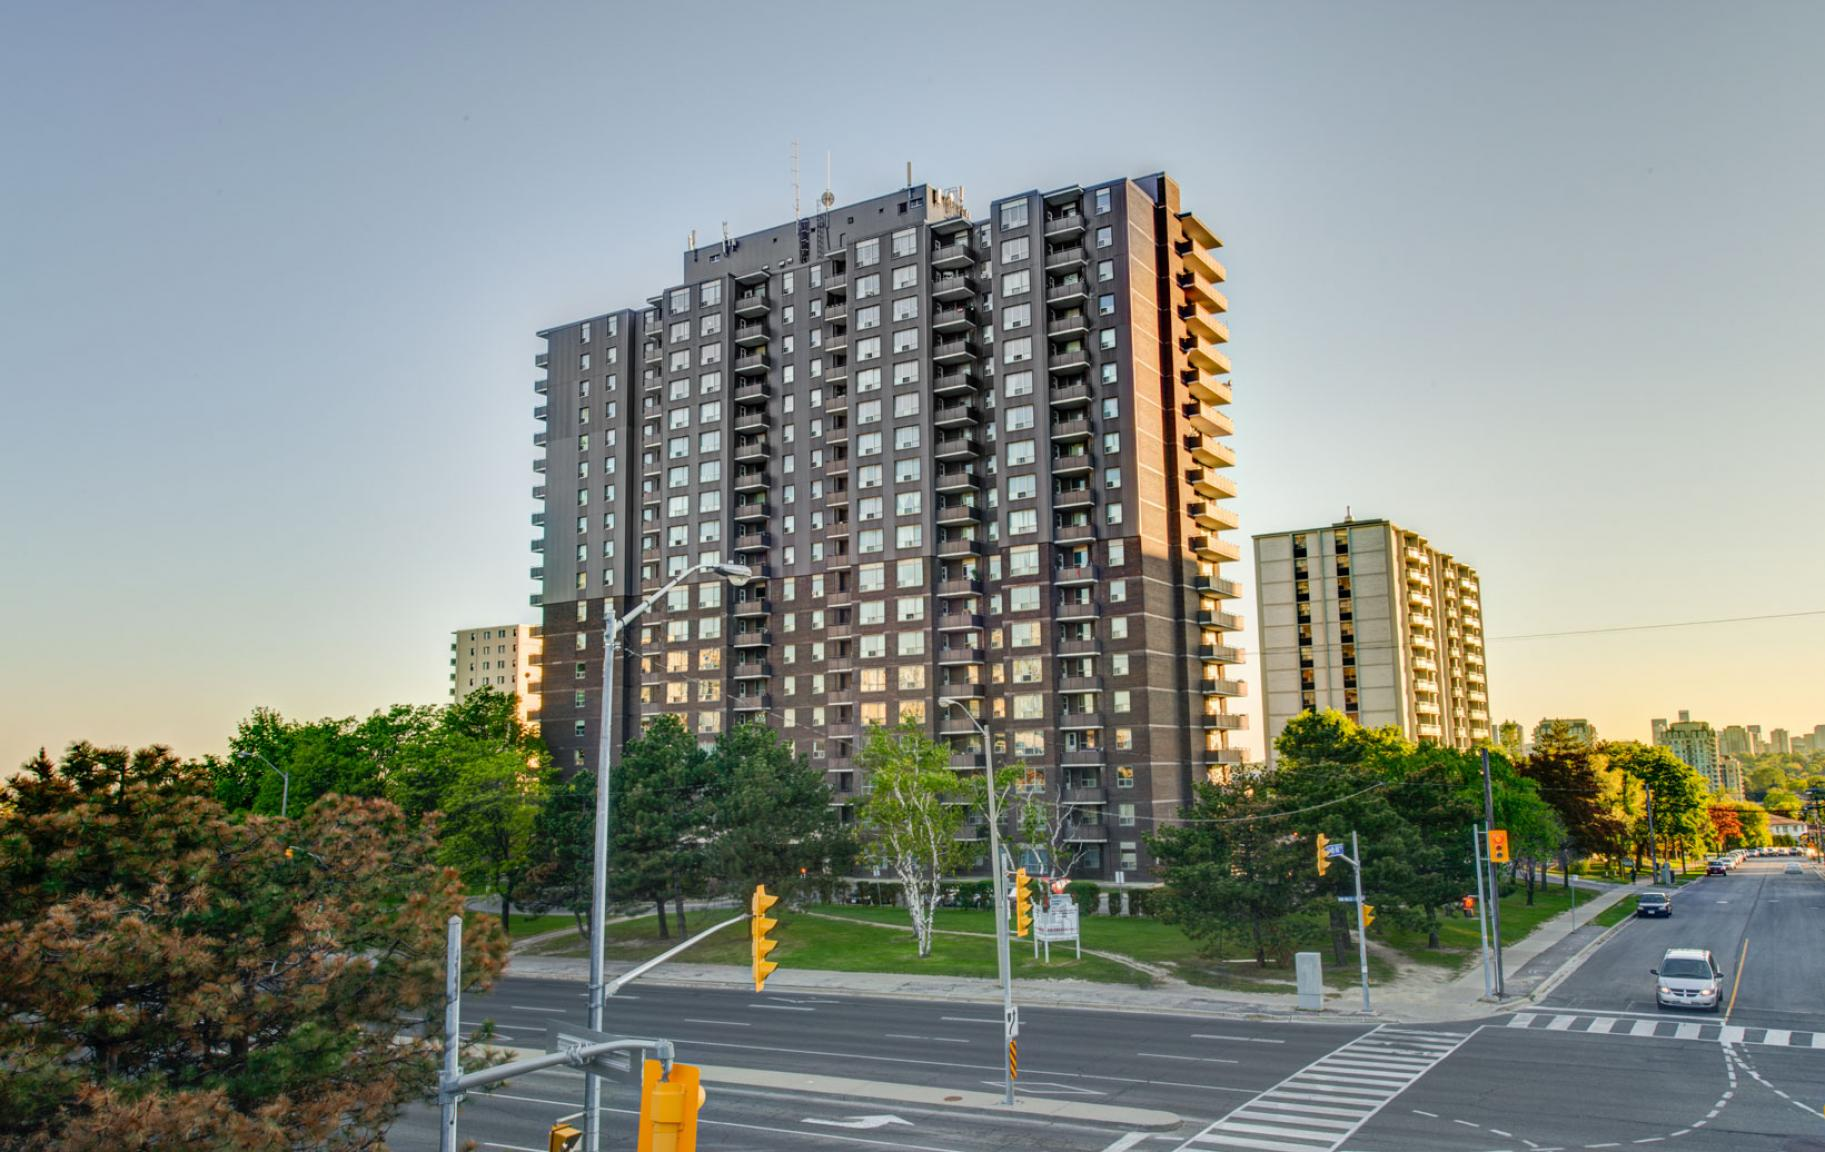 Toronto Apartments For Rent | Toronto Rental Listings Page 1